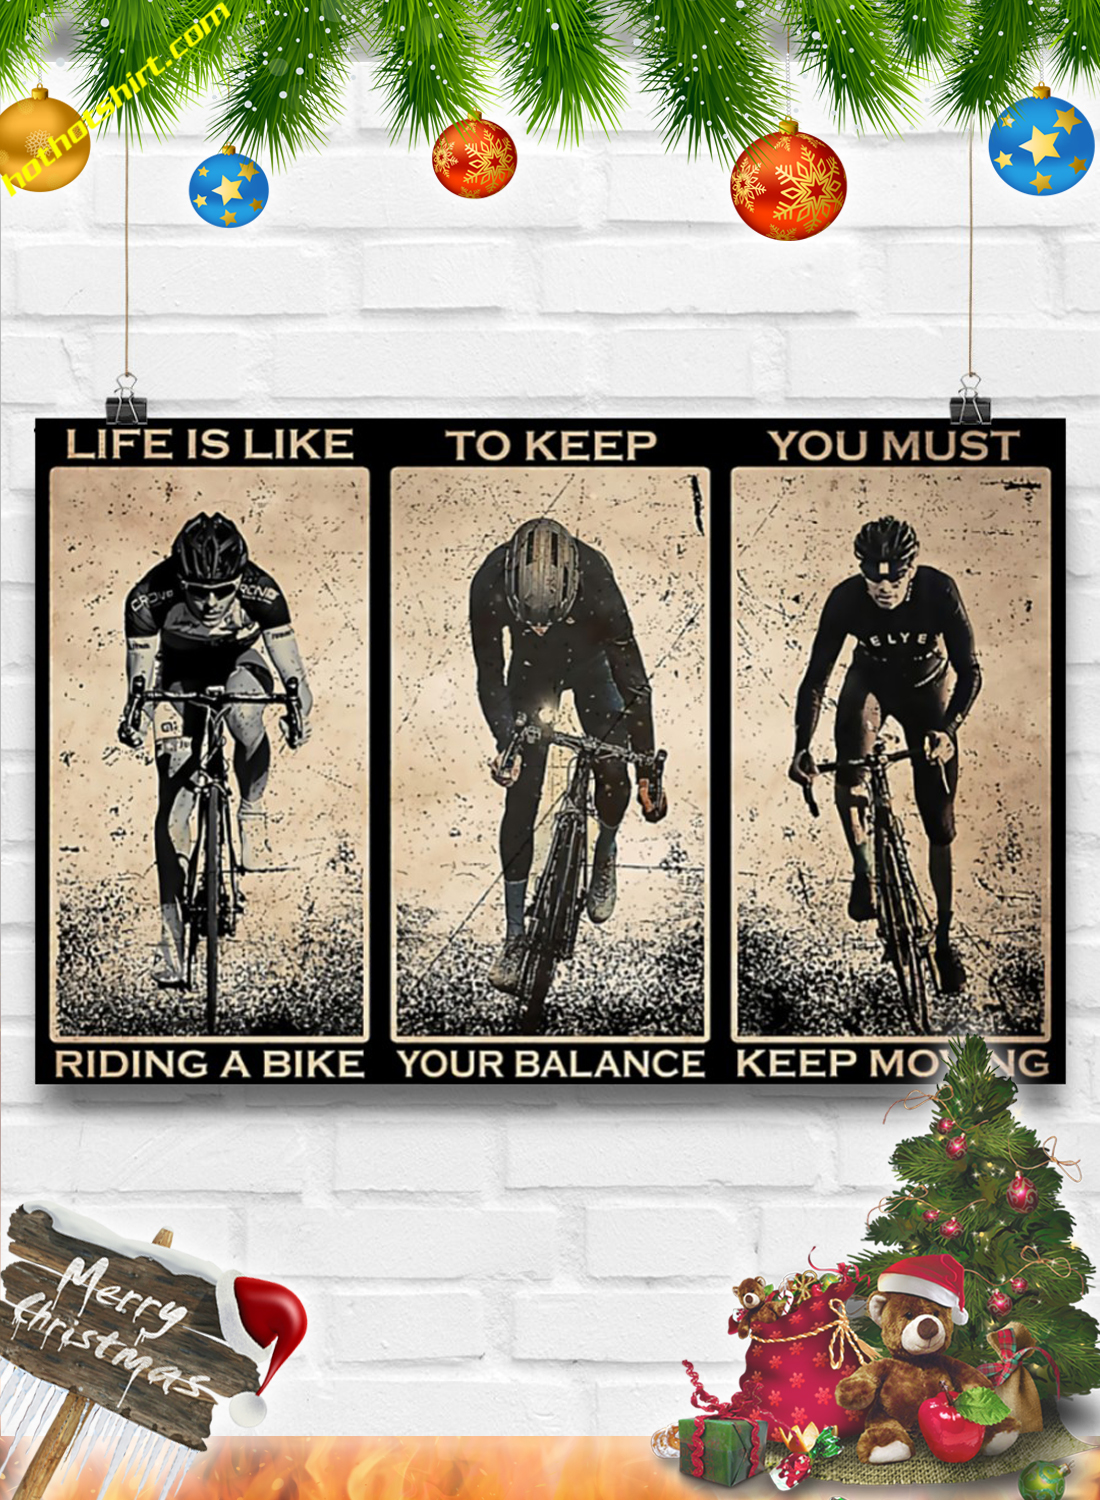 Cycling Life is like riding a bike poster 3